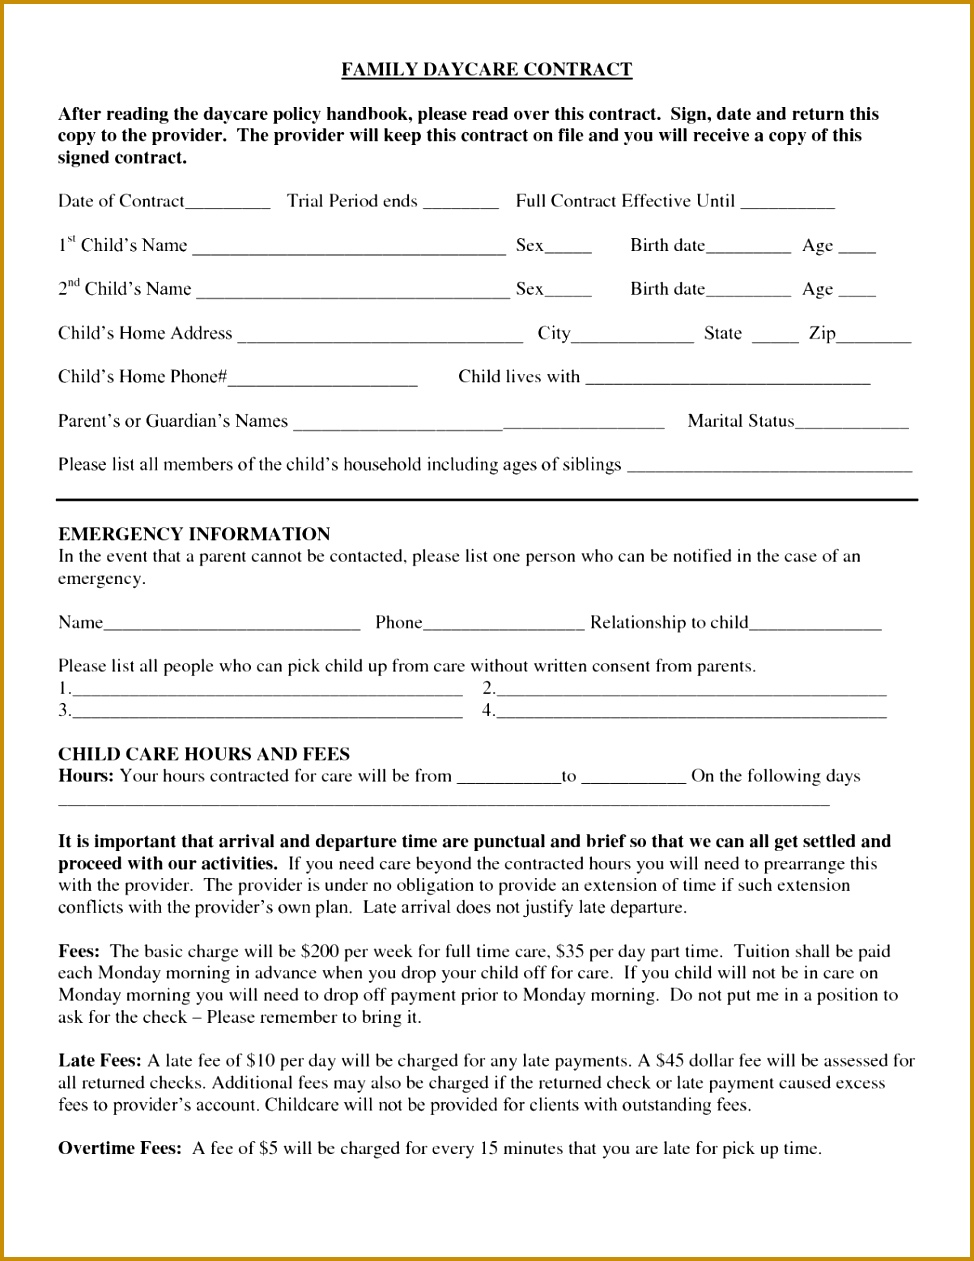 9 Daycare Application Form Templates Free Pdf Doc Format Printable Daycare Contract Family After Reading The Free Forms And Sample Documents 1261974